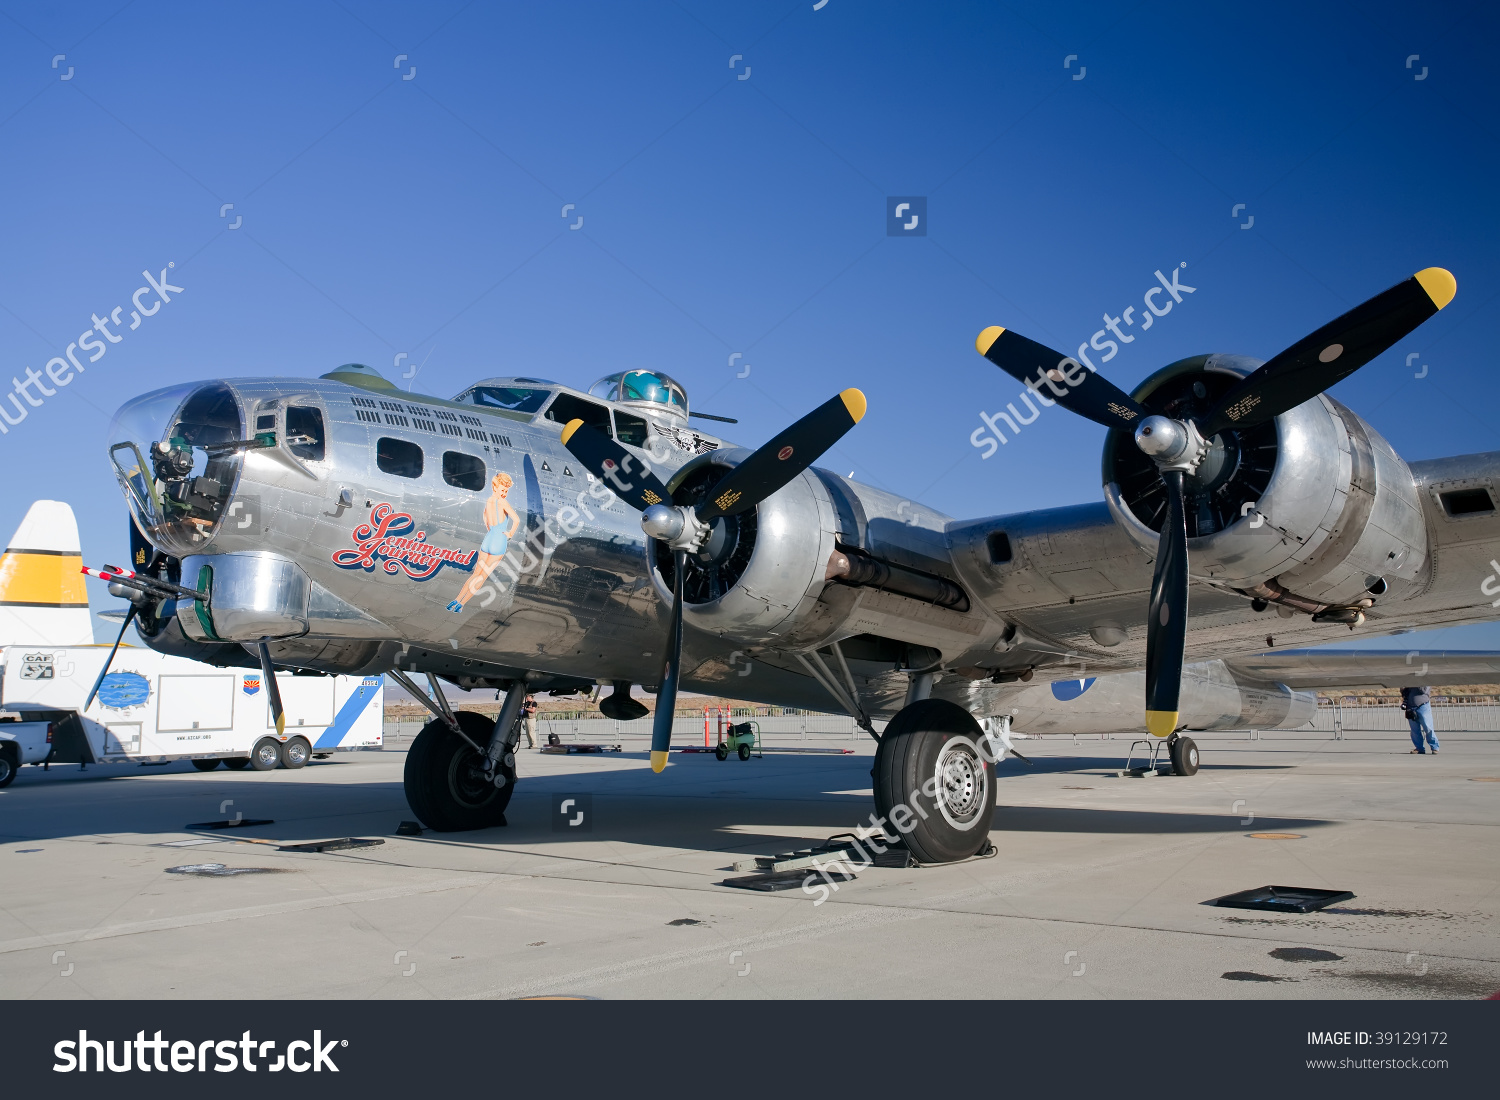 Edwards Afb Ca October 17 Boeing Stock Photo 39129172.